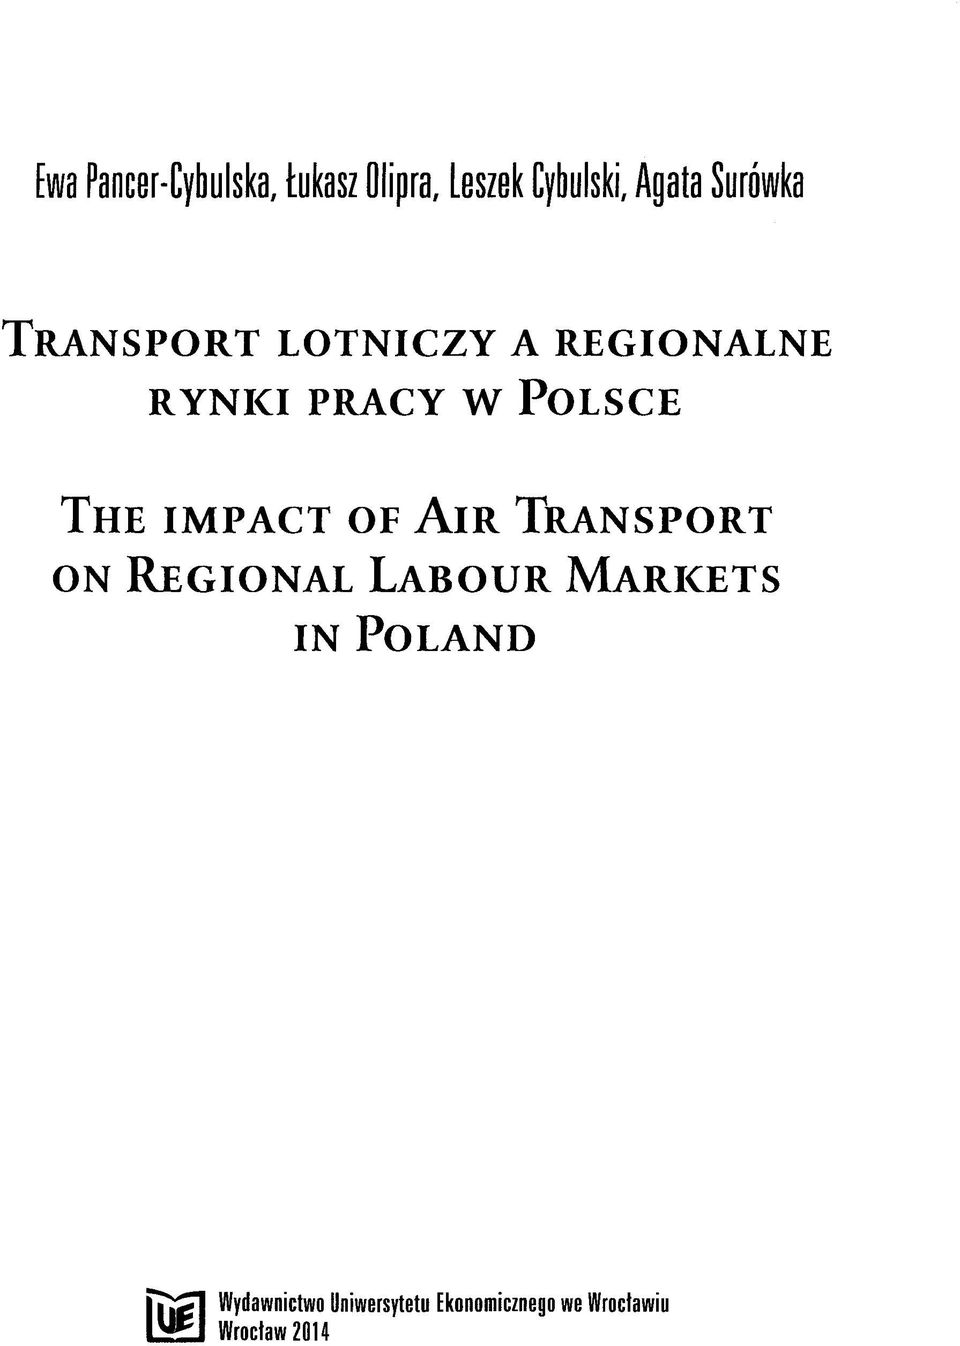 IMPACT OF AIR TRANSPORT ON REGIONAL LABOUR MARICETS IN POLAND